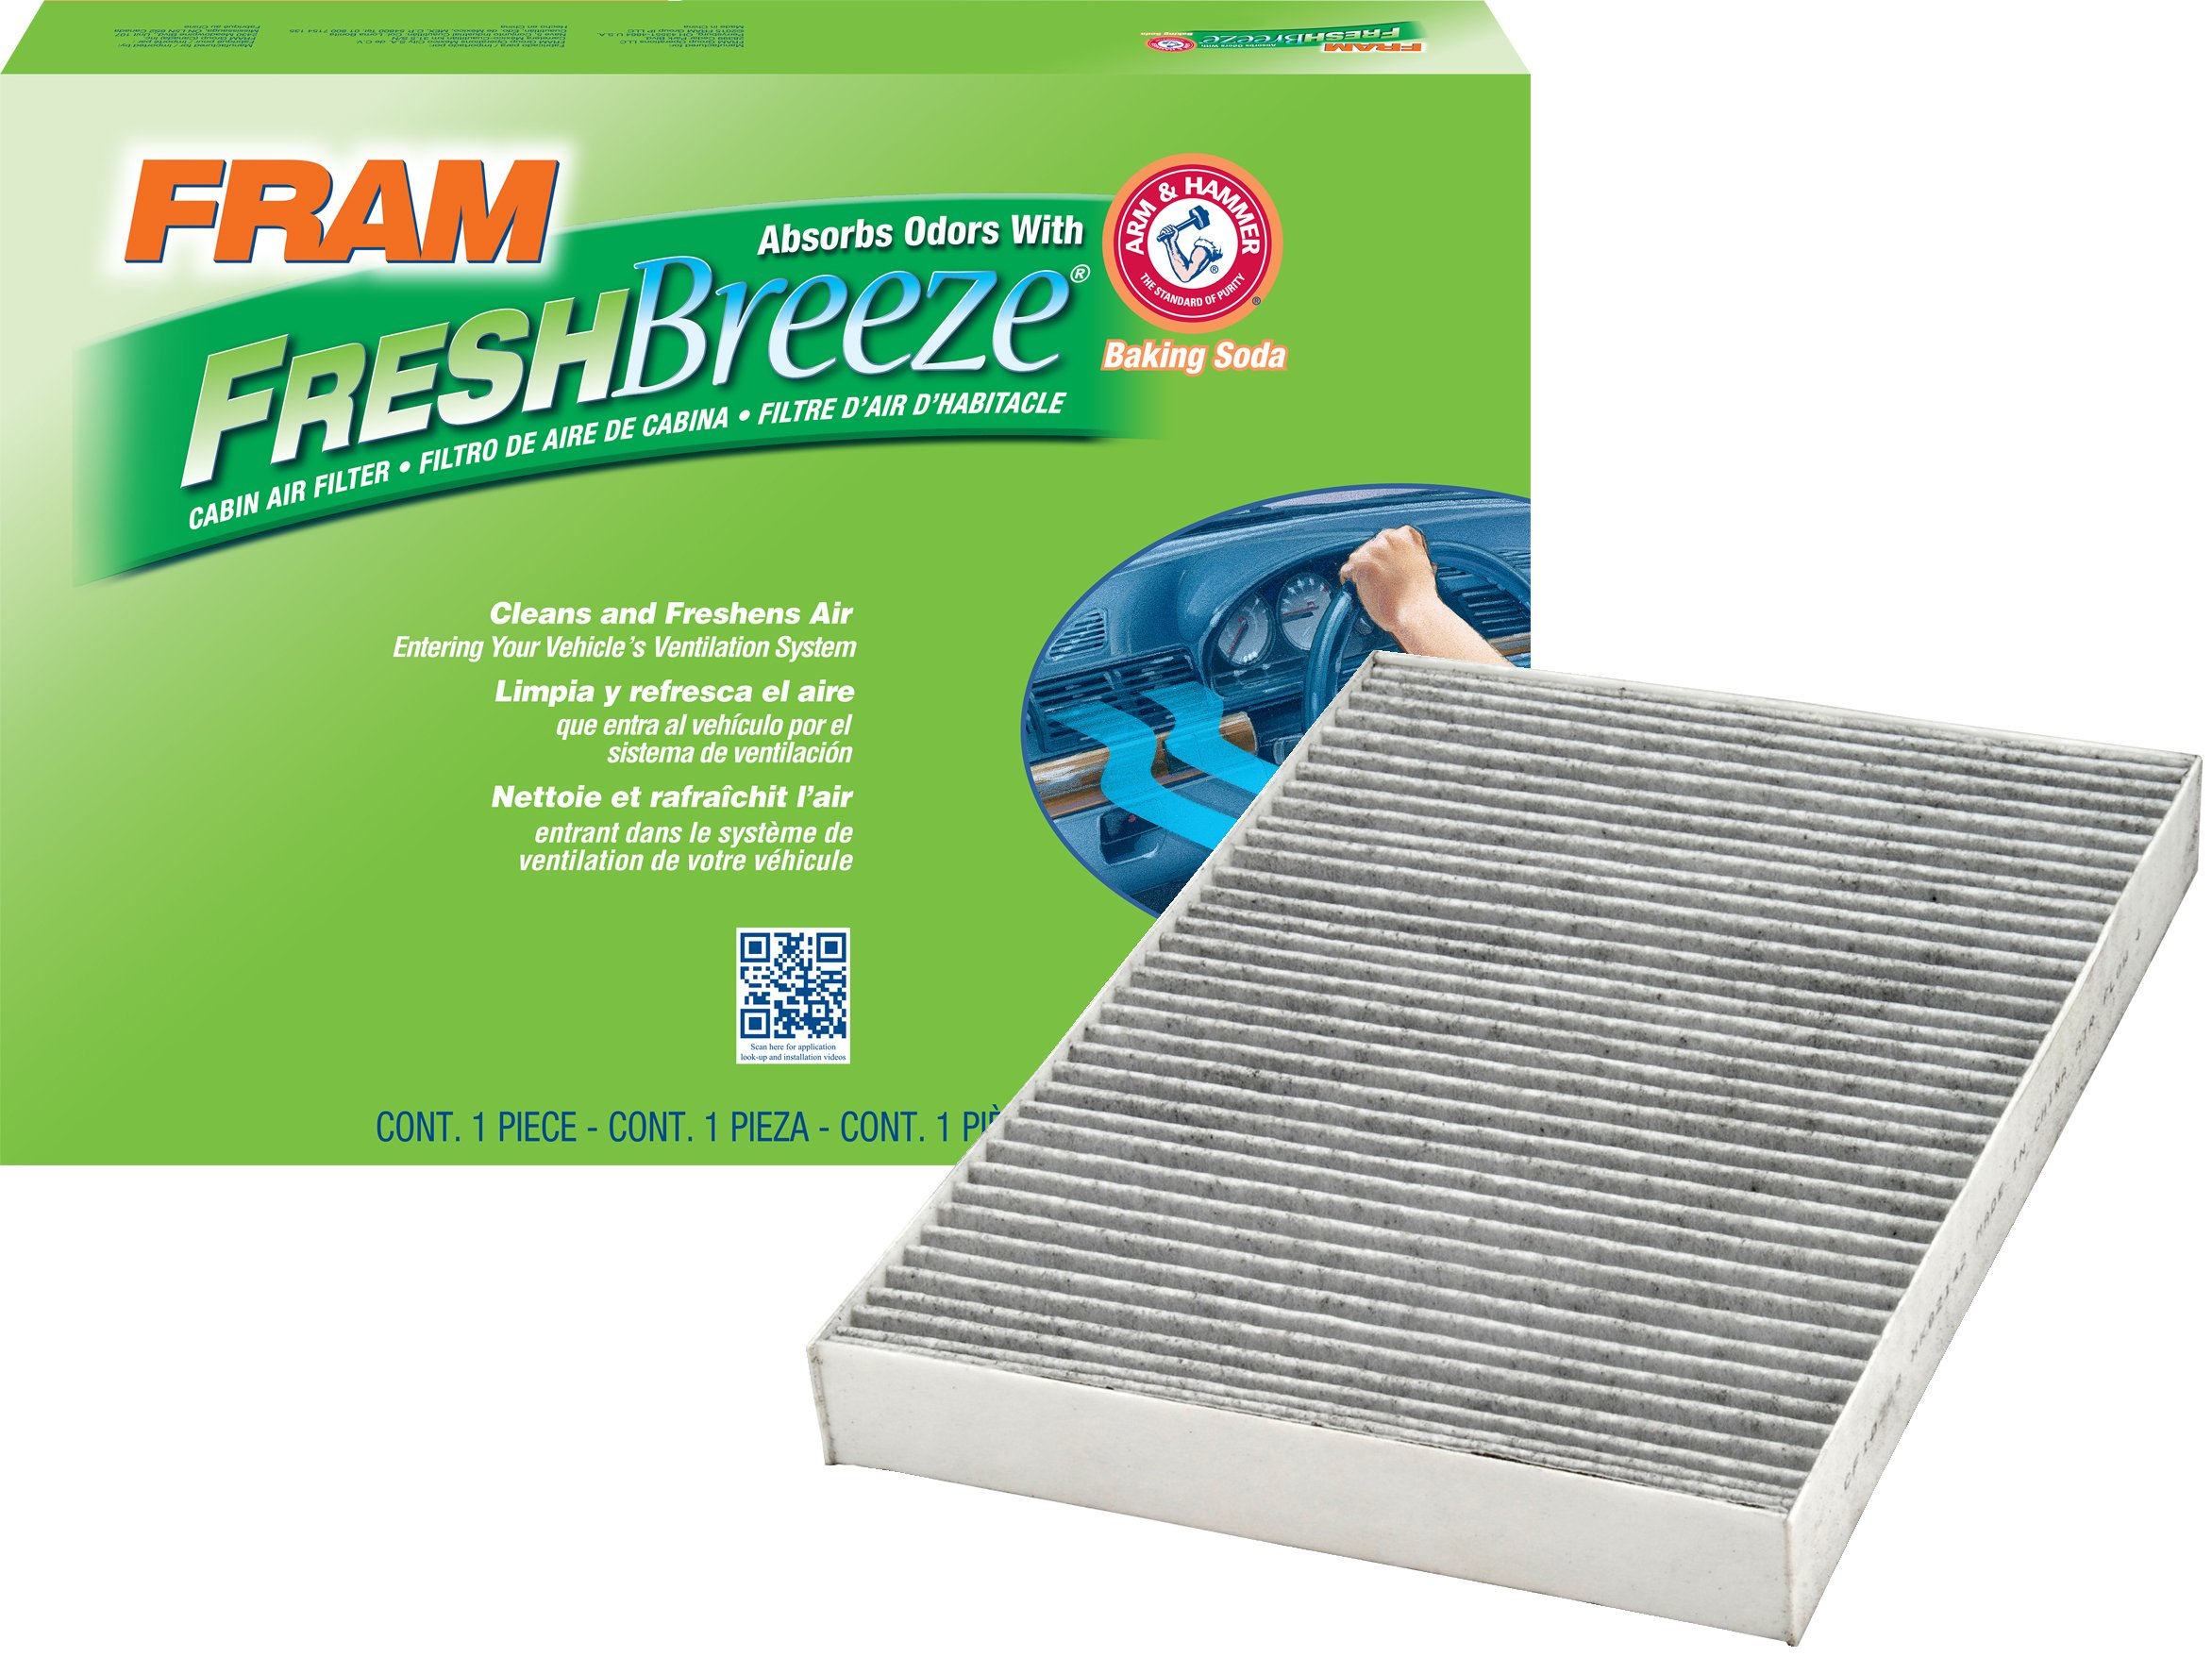 FRAM CF10368 Fresh Breeze Cabin Air Filter with Arm & Hammer